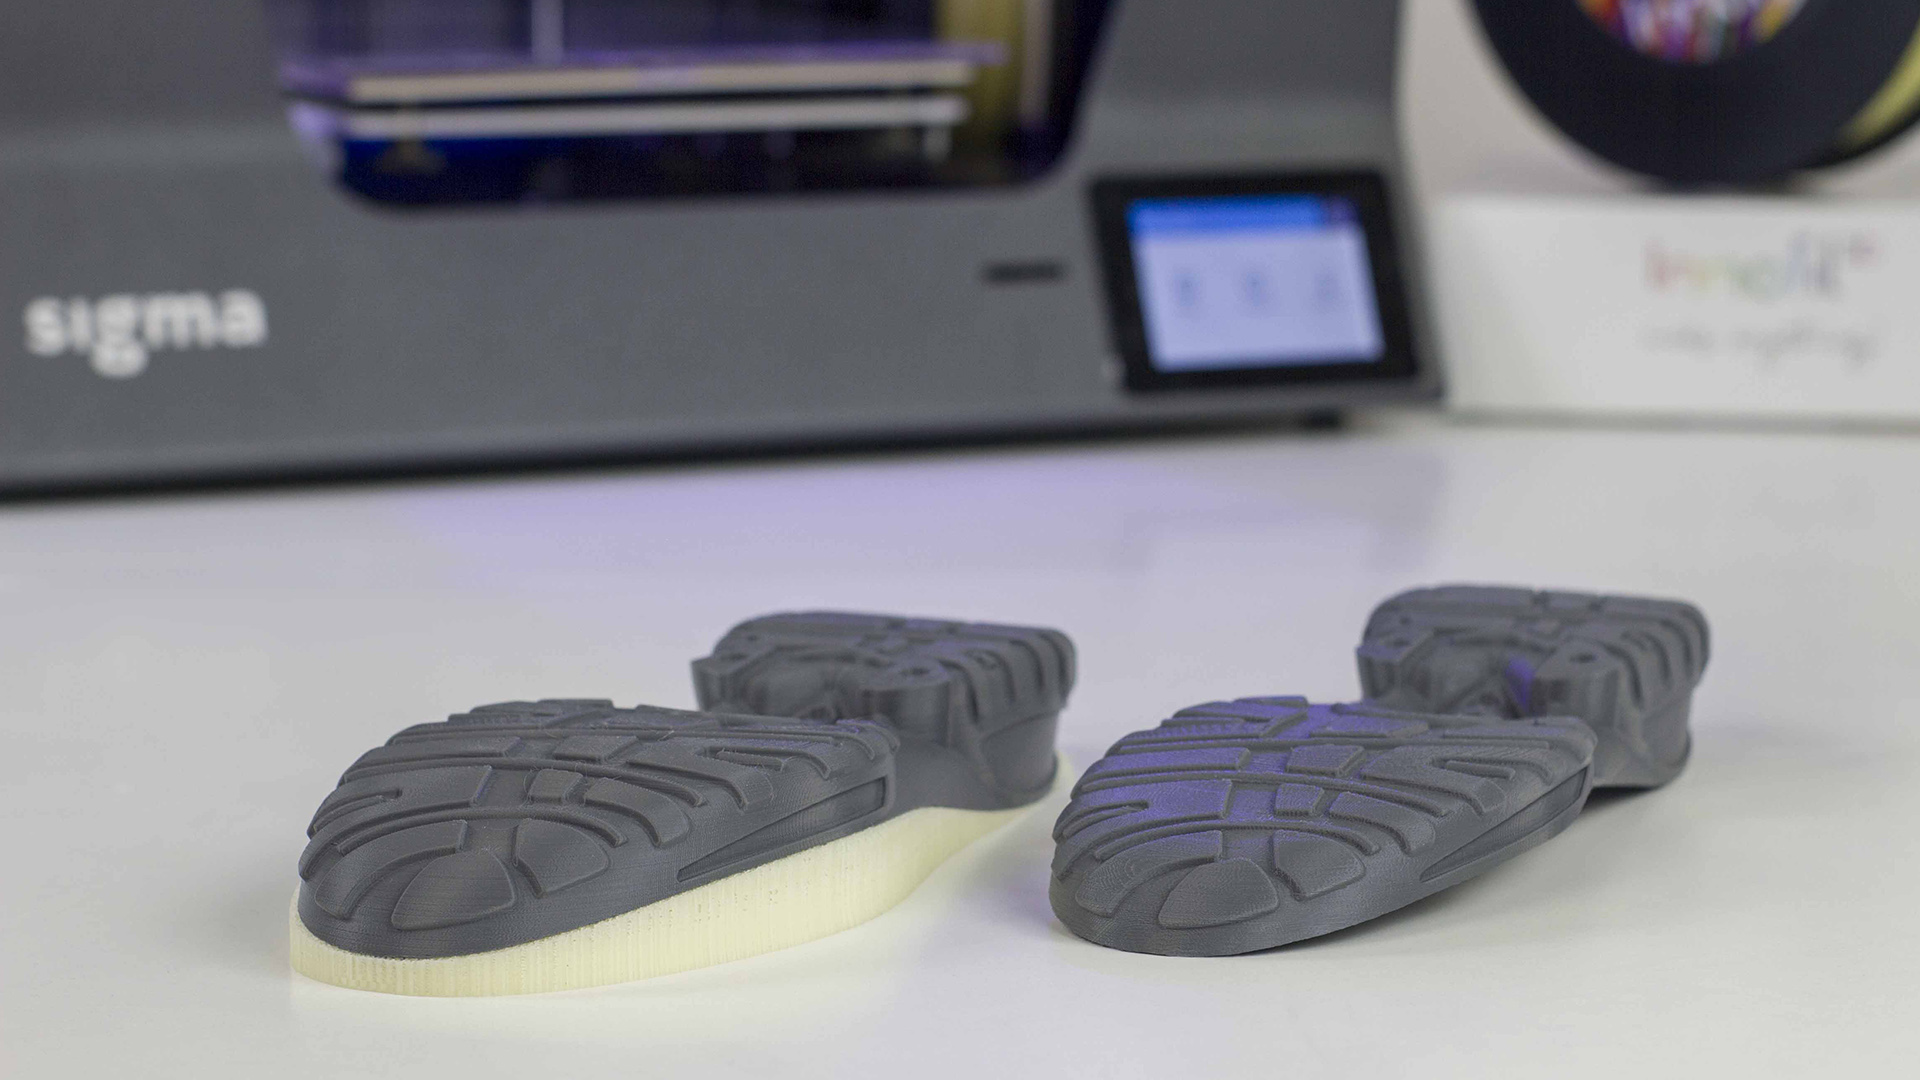 BCN3D_Sigma_Sigmax_tech_materials_innofil_innosolve_shoes_3D_printing